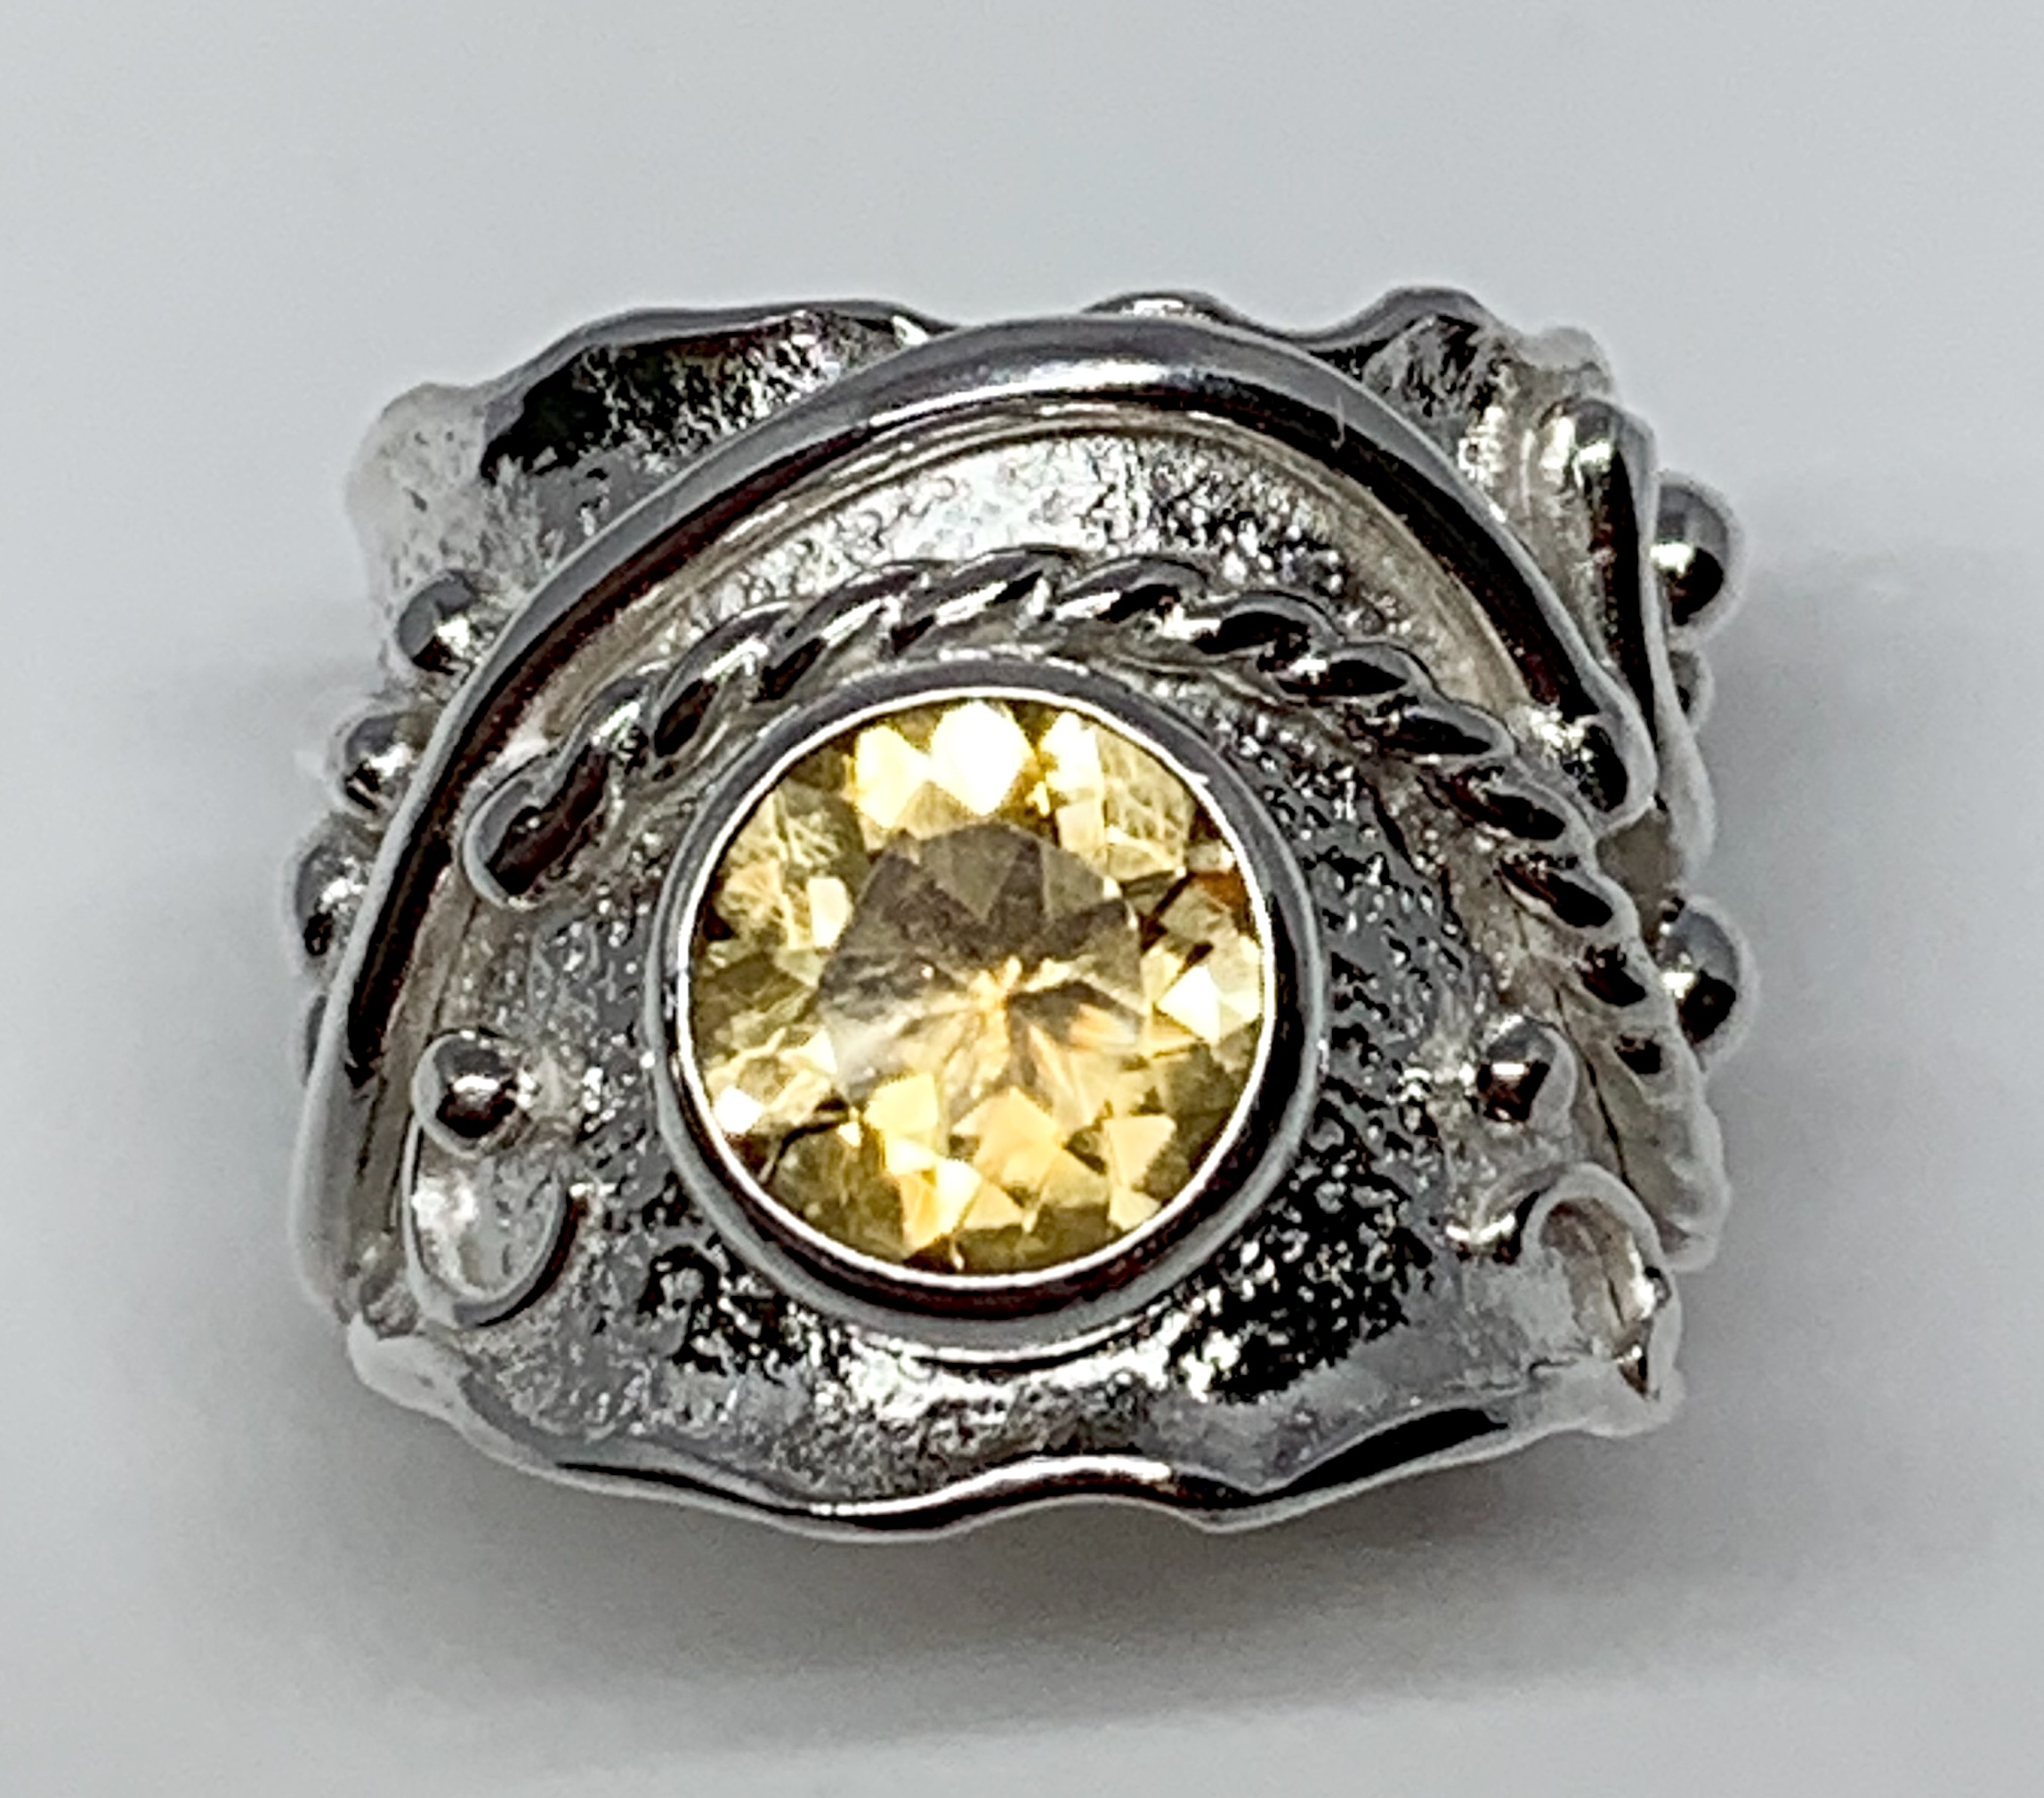 2.25ct citrine + sterling silver ring by A&R Jewellery | Effusion Art Gallery + Cast Glass Studio, Invermere BC